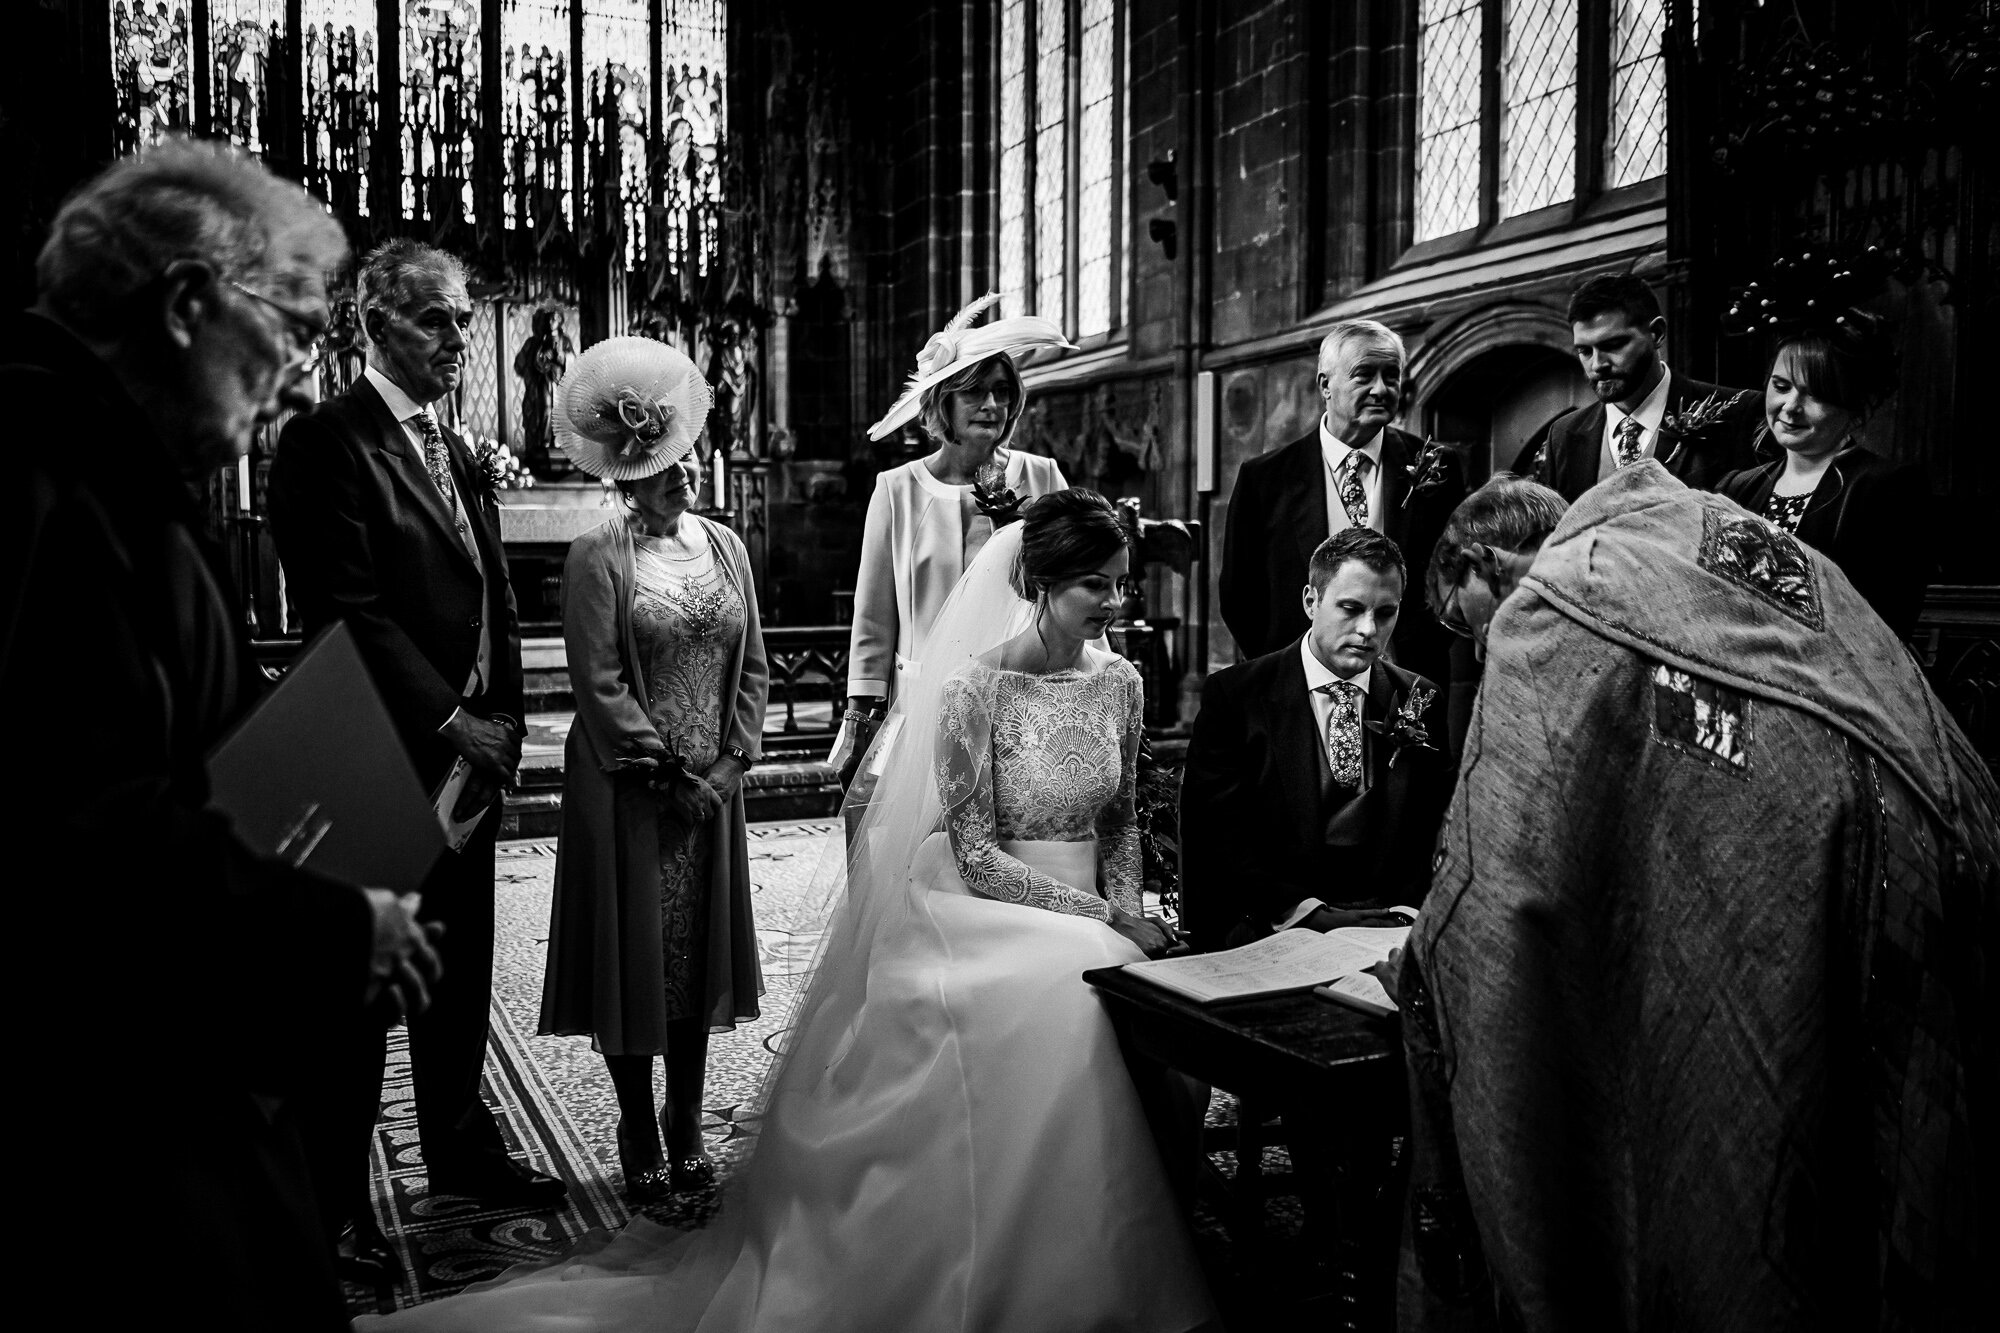 Dorfold Hall wedding photographer Wedding Photography Cheshire wedding photographer (31 of 60).jpg